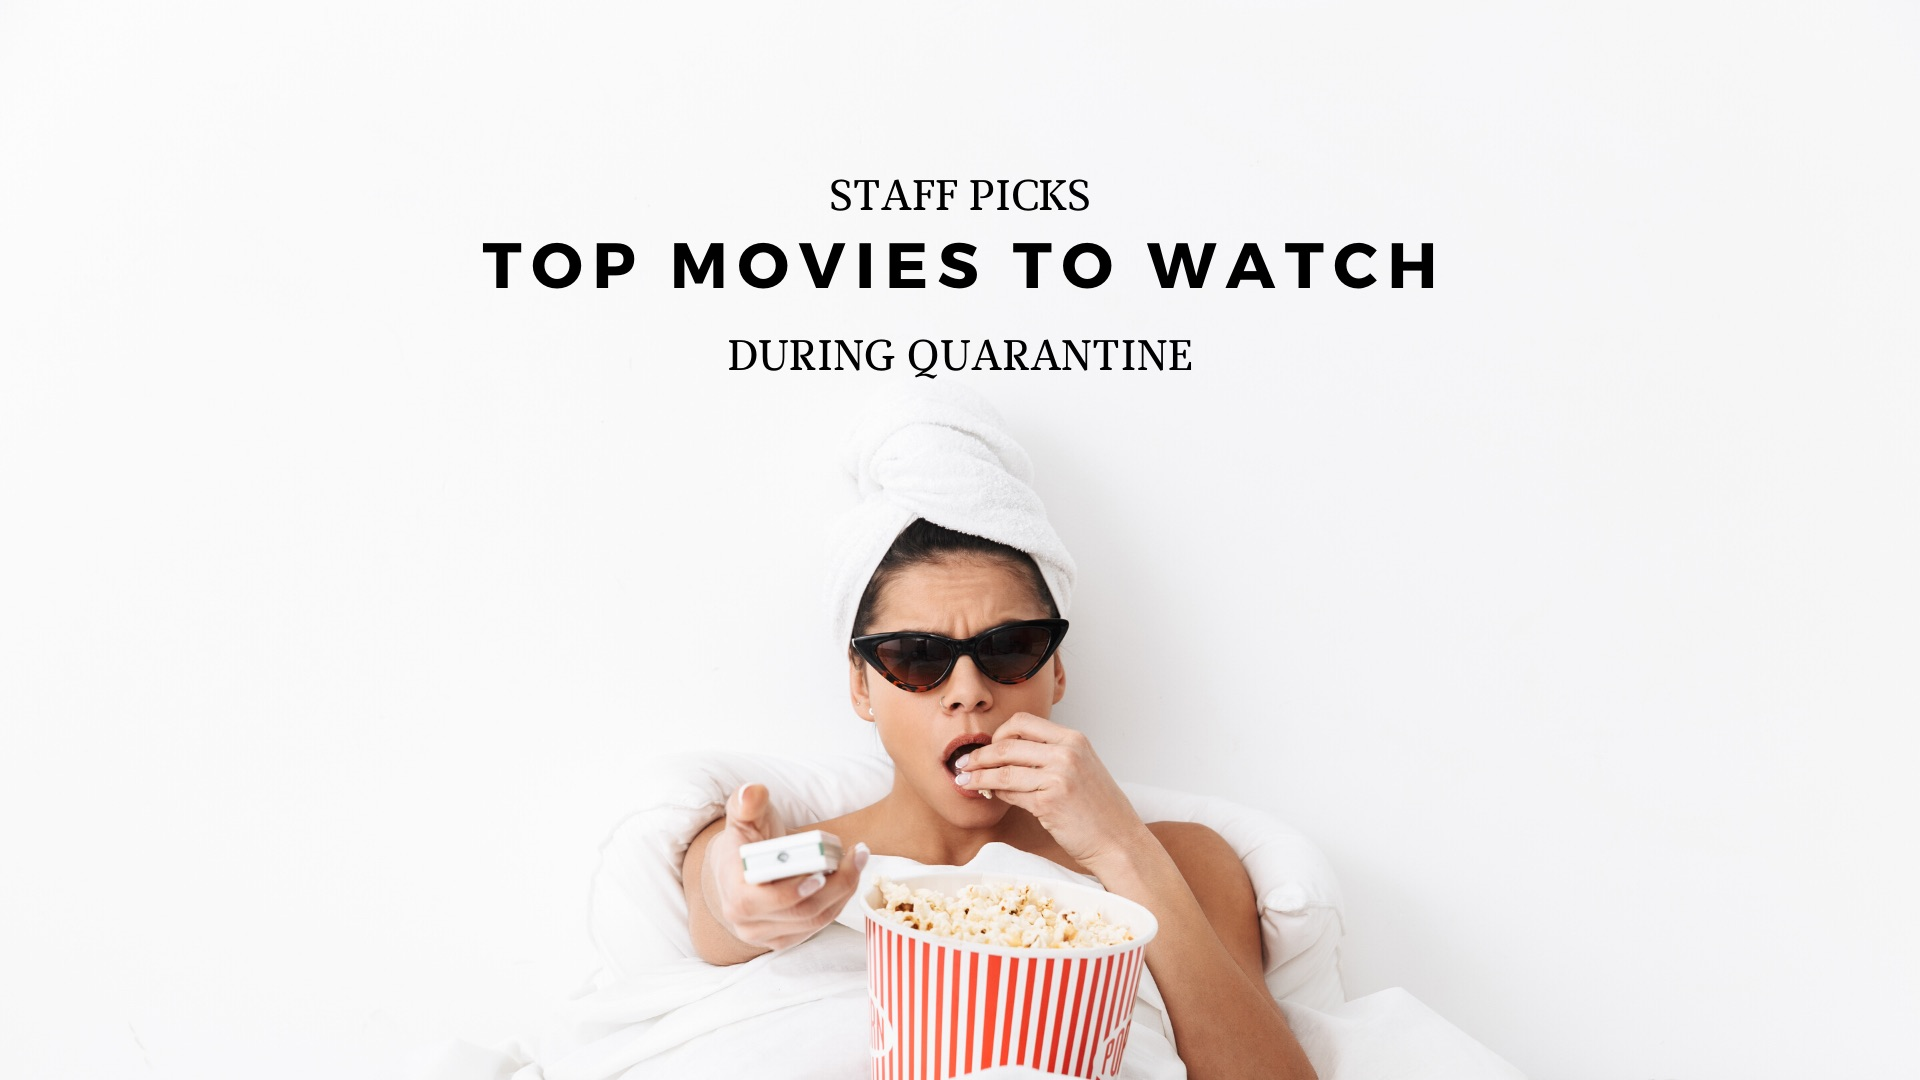 The Best Movies To Watch During Quarantine